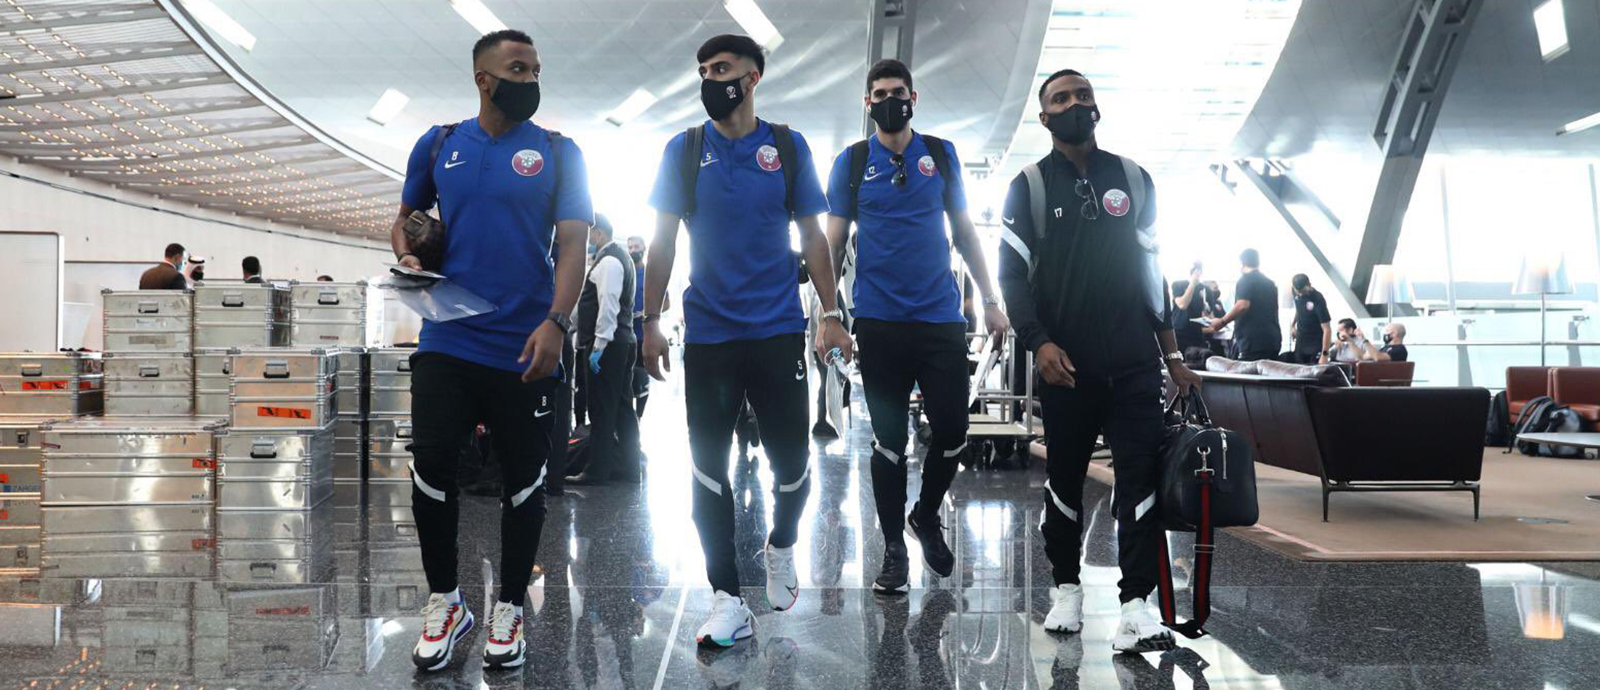 Qatar football team arrives in Turkey